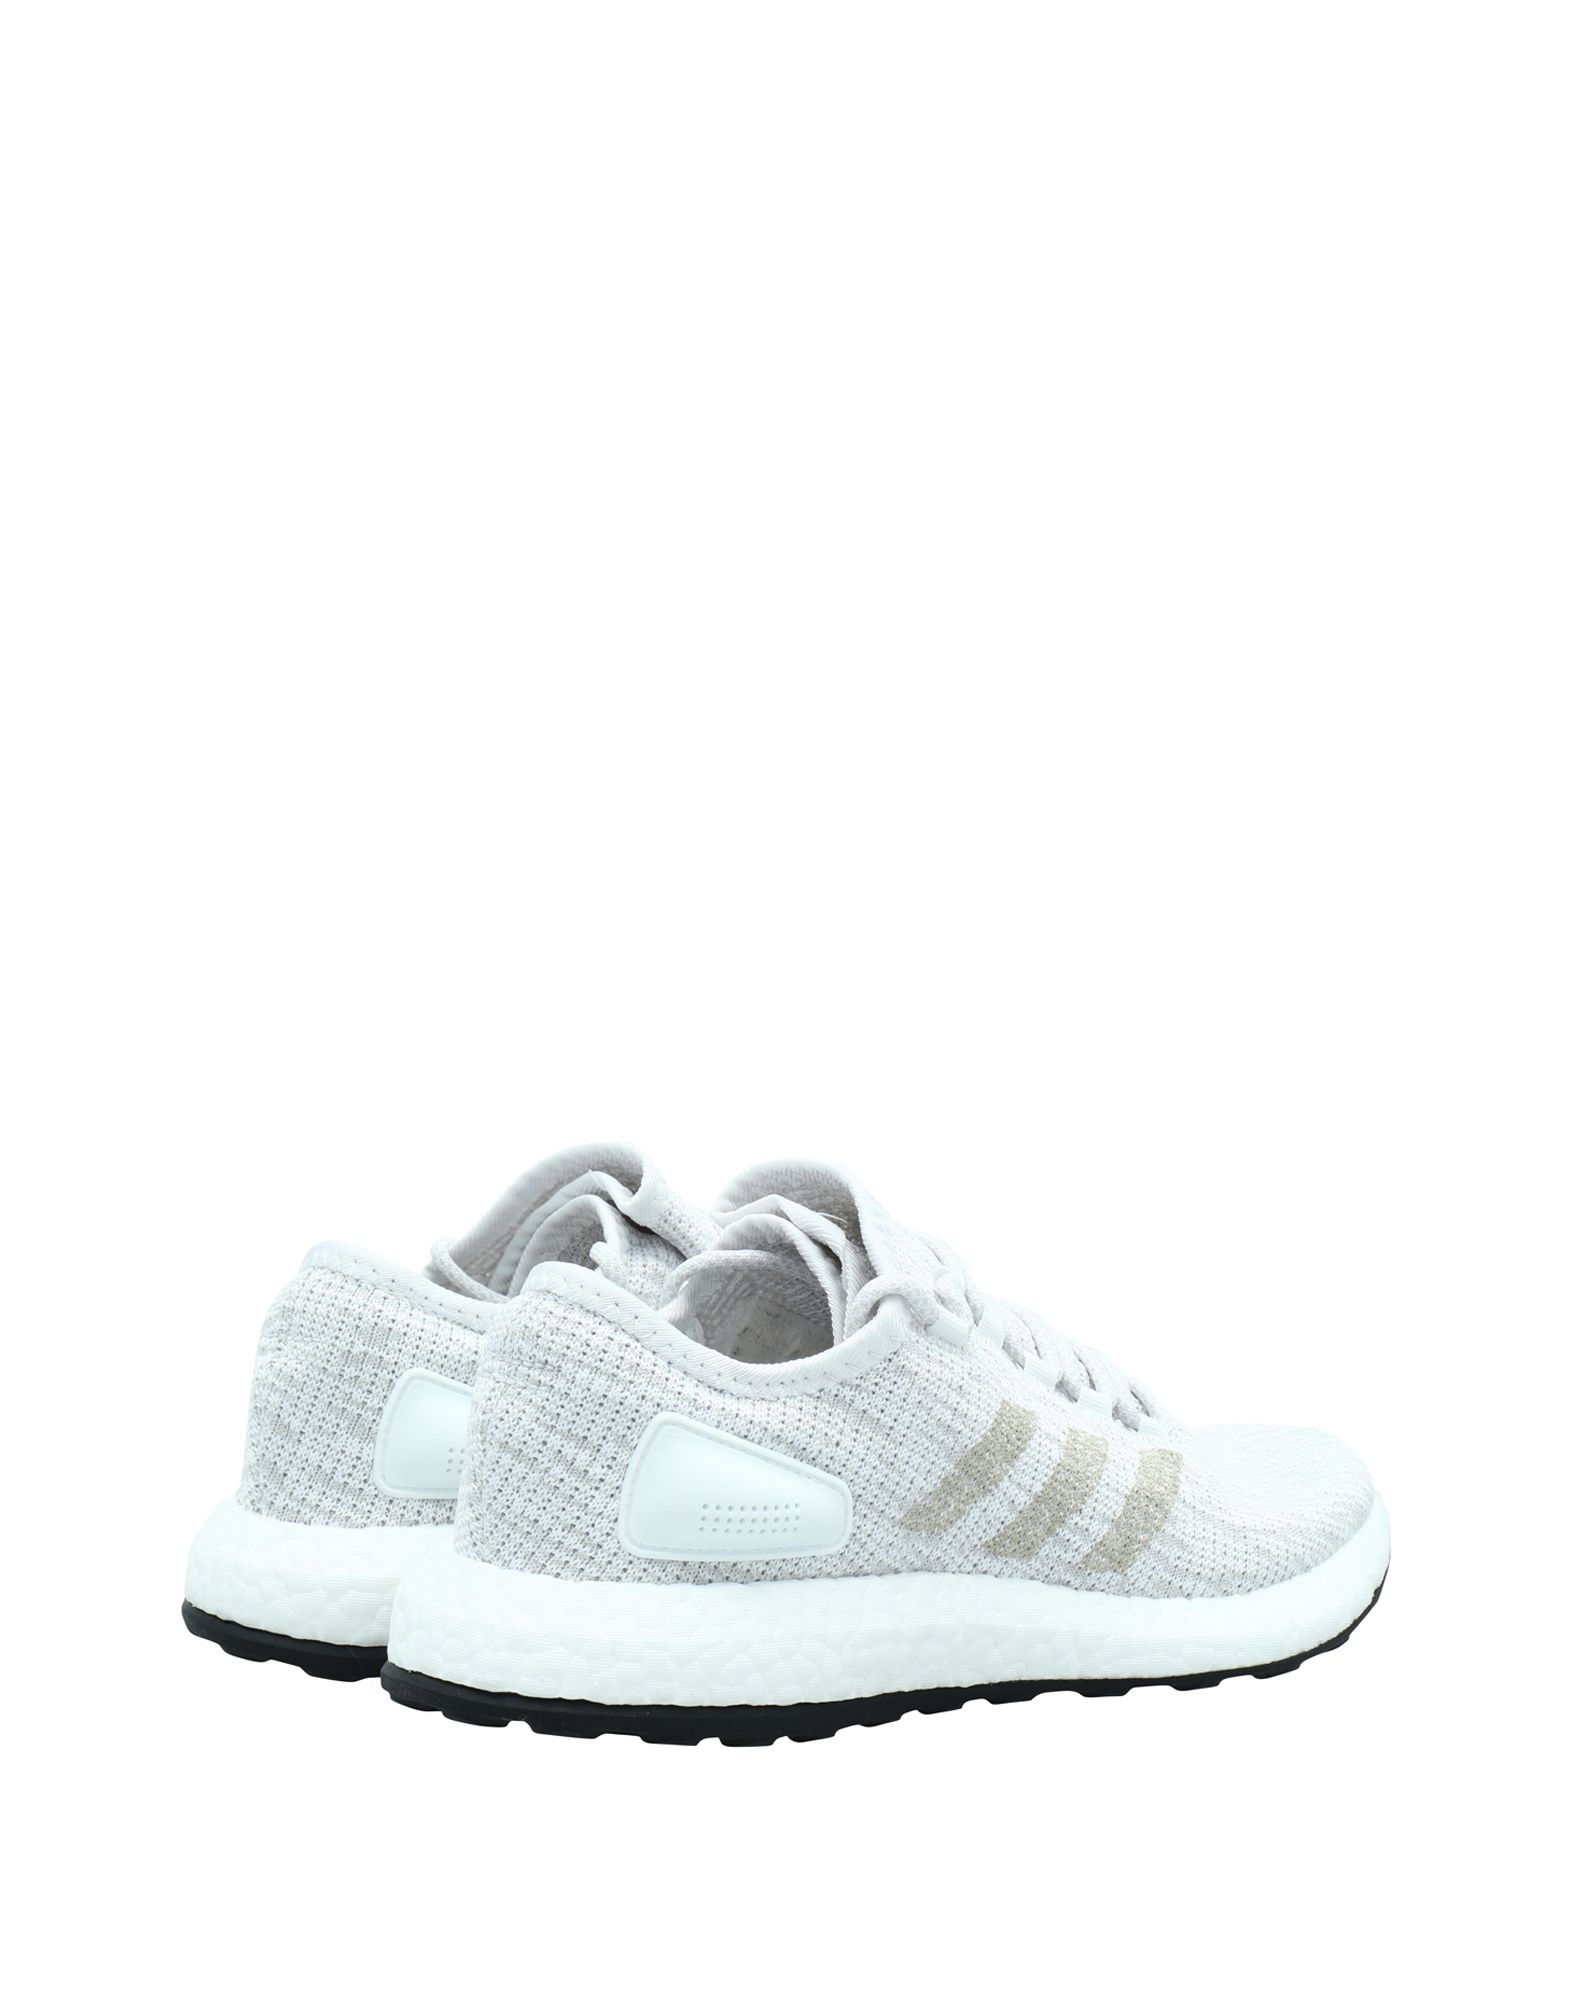 Adidas Adidas Adidas Pureboost - Sneakers - Men Adidas Sneakers online on  United Kingdom - 11533453JV 7395f0